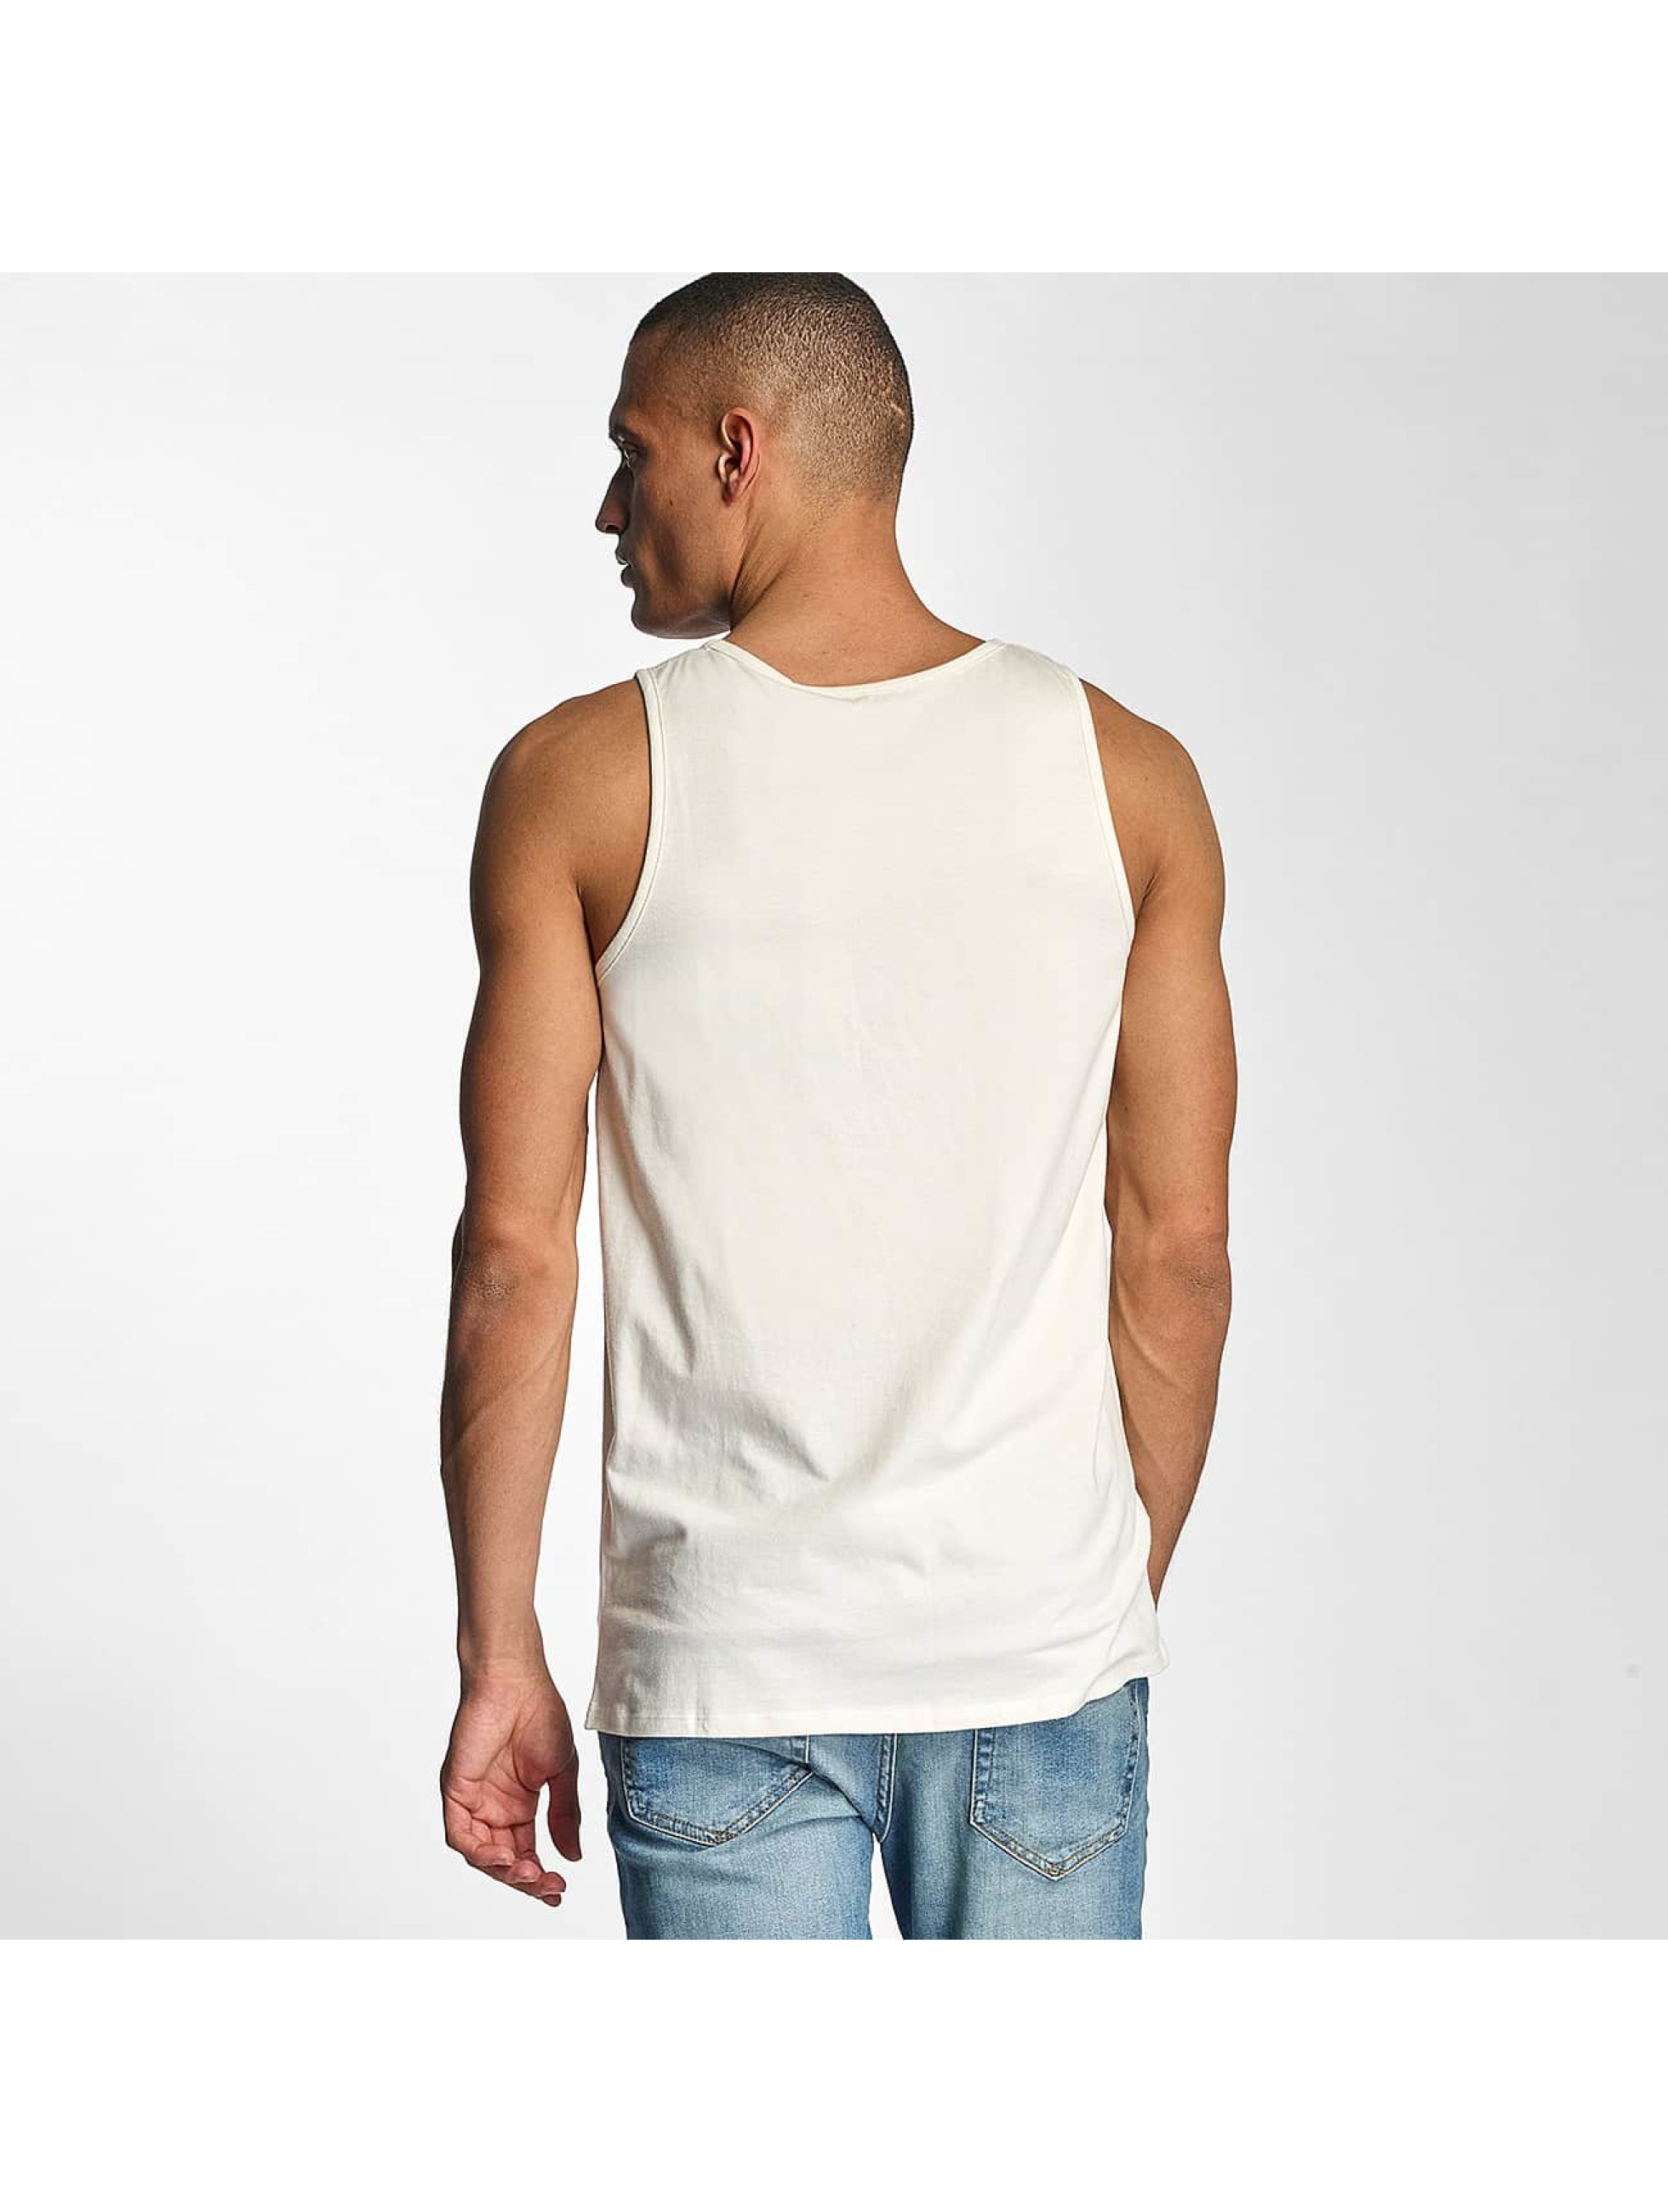 O'NEILL Tank Tops Reflect beige